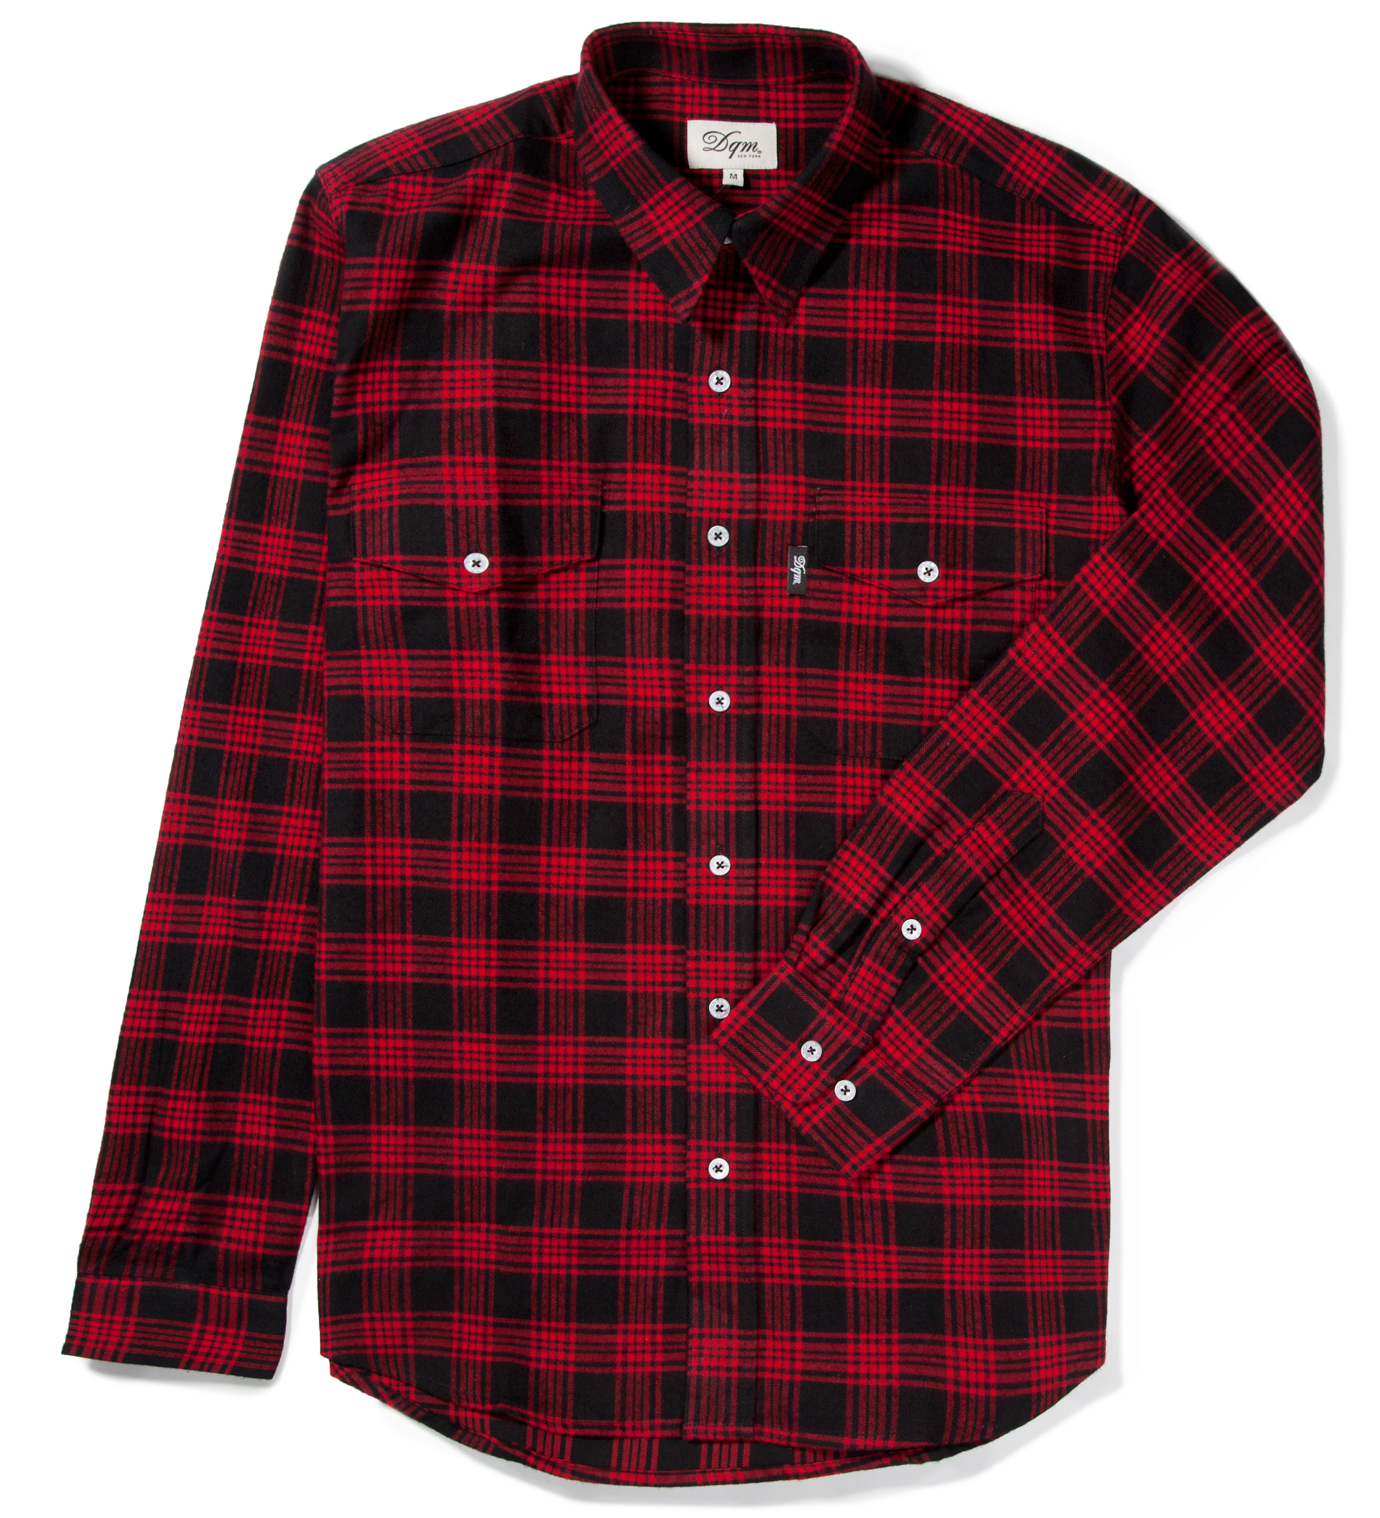 DQM Black/Red Kodiak Cotton Flannel Shirt